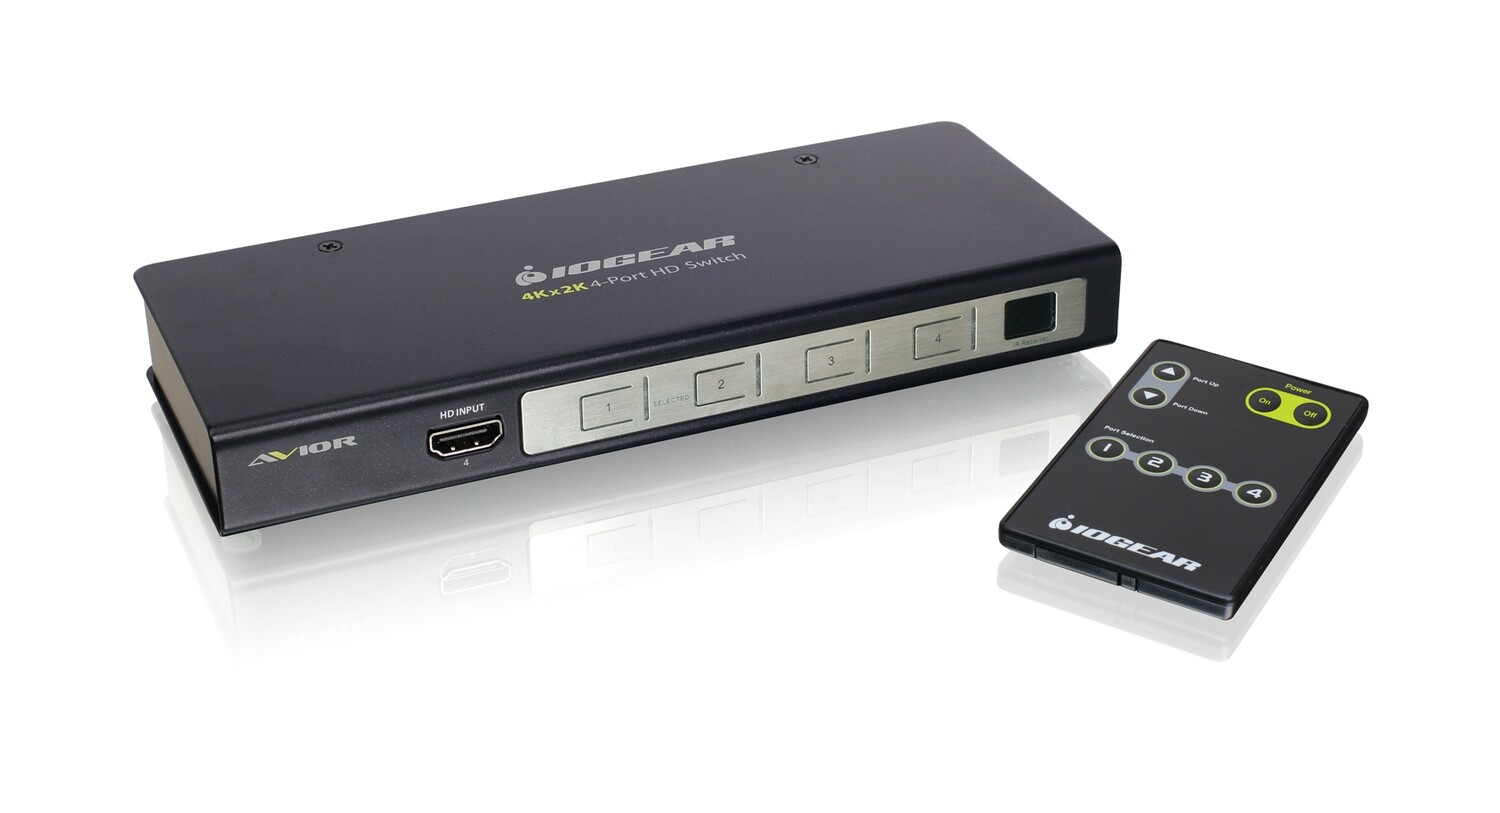 4K UHD 4-Port HDMI Switch with RS-232 Support